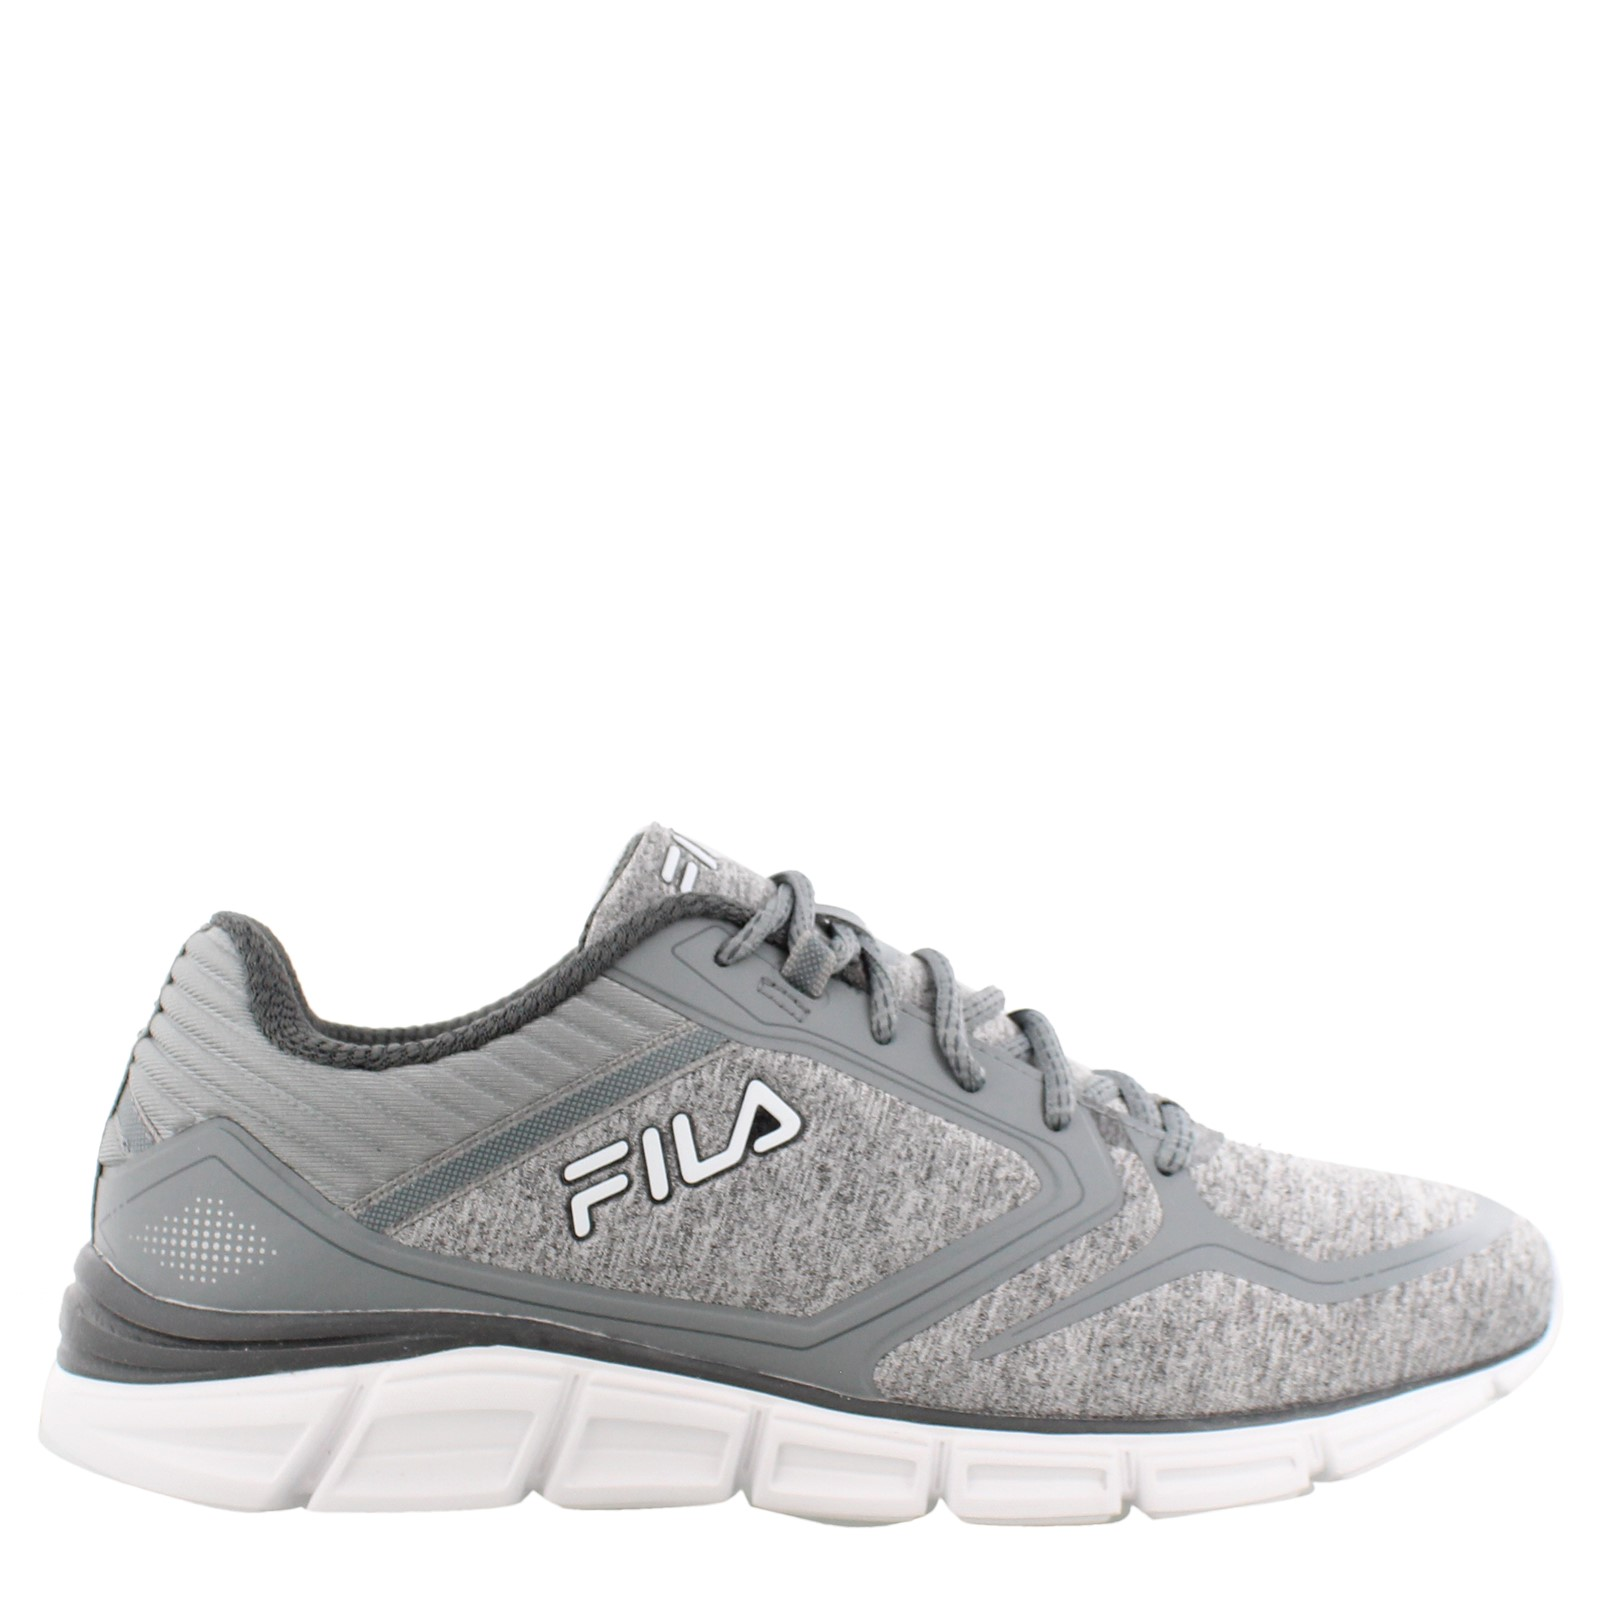 Women's Fila, Memory Aspect 8 Running Sneakers